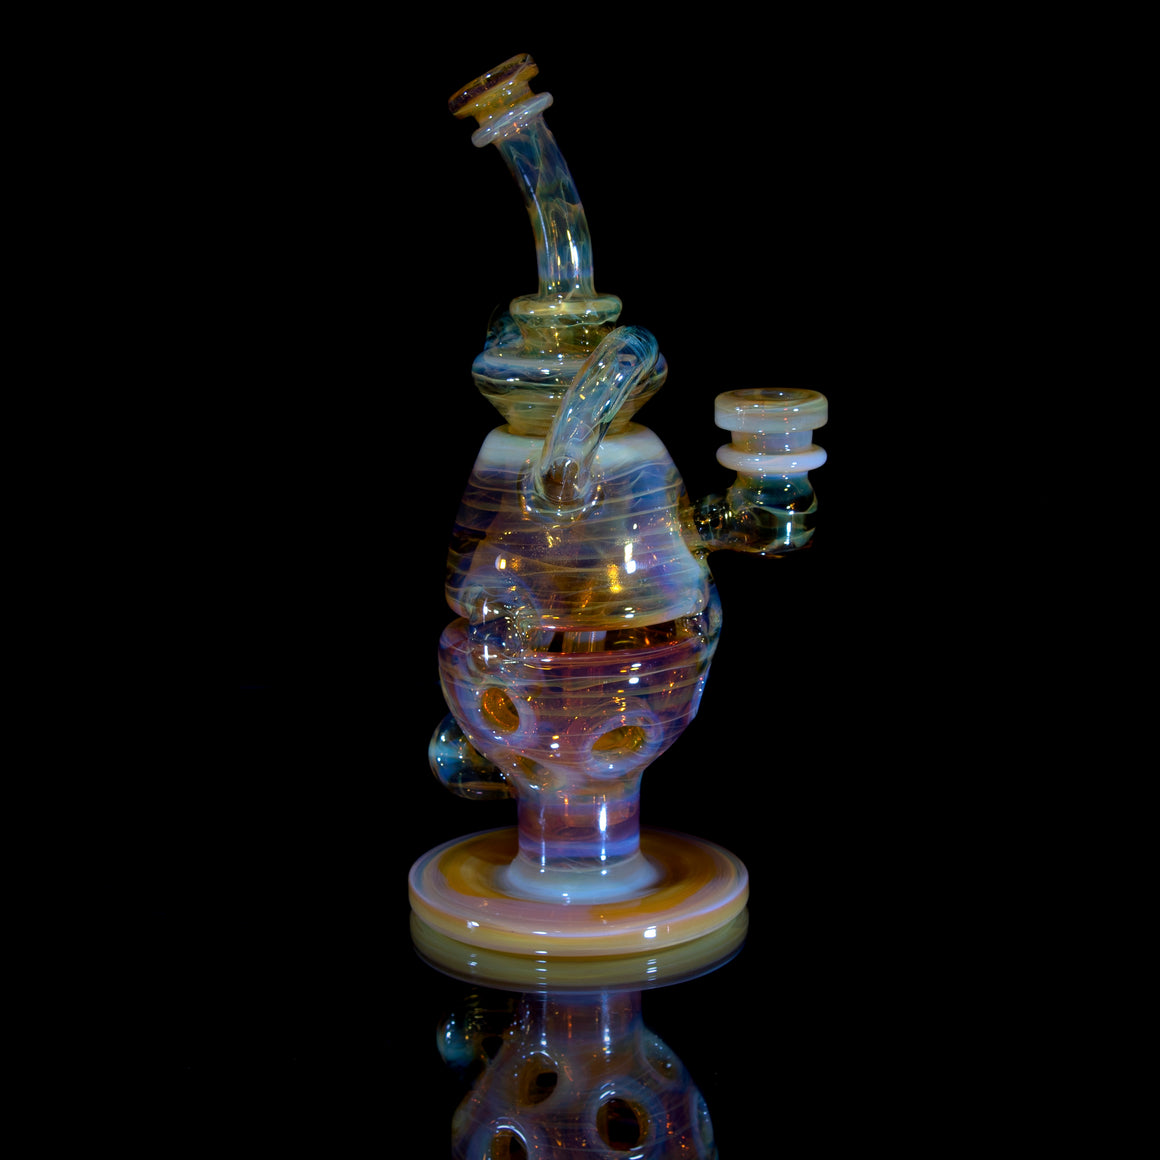 Double-Uptake Faberge Egg Klein Recycler  - NS Yellow - 14mm Female